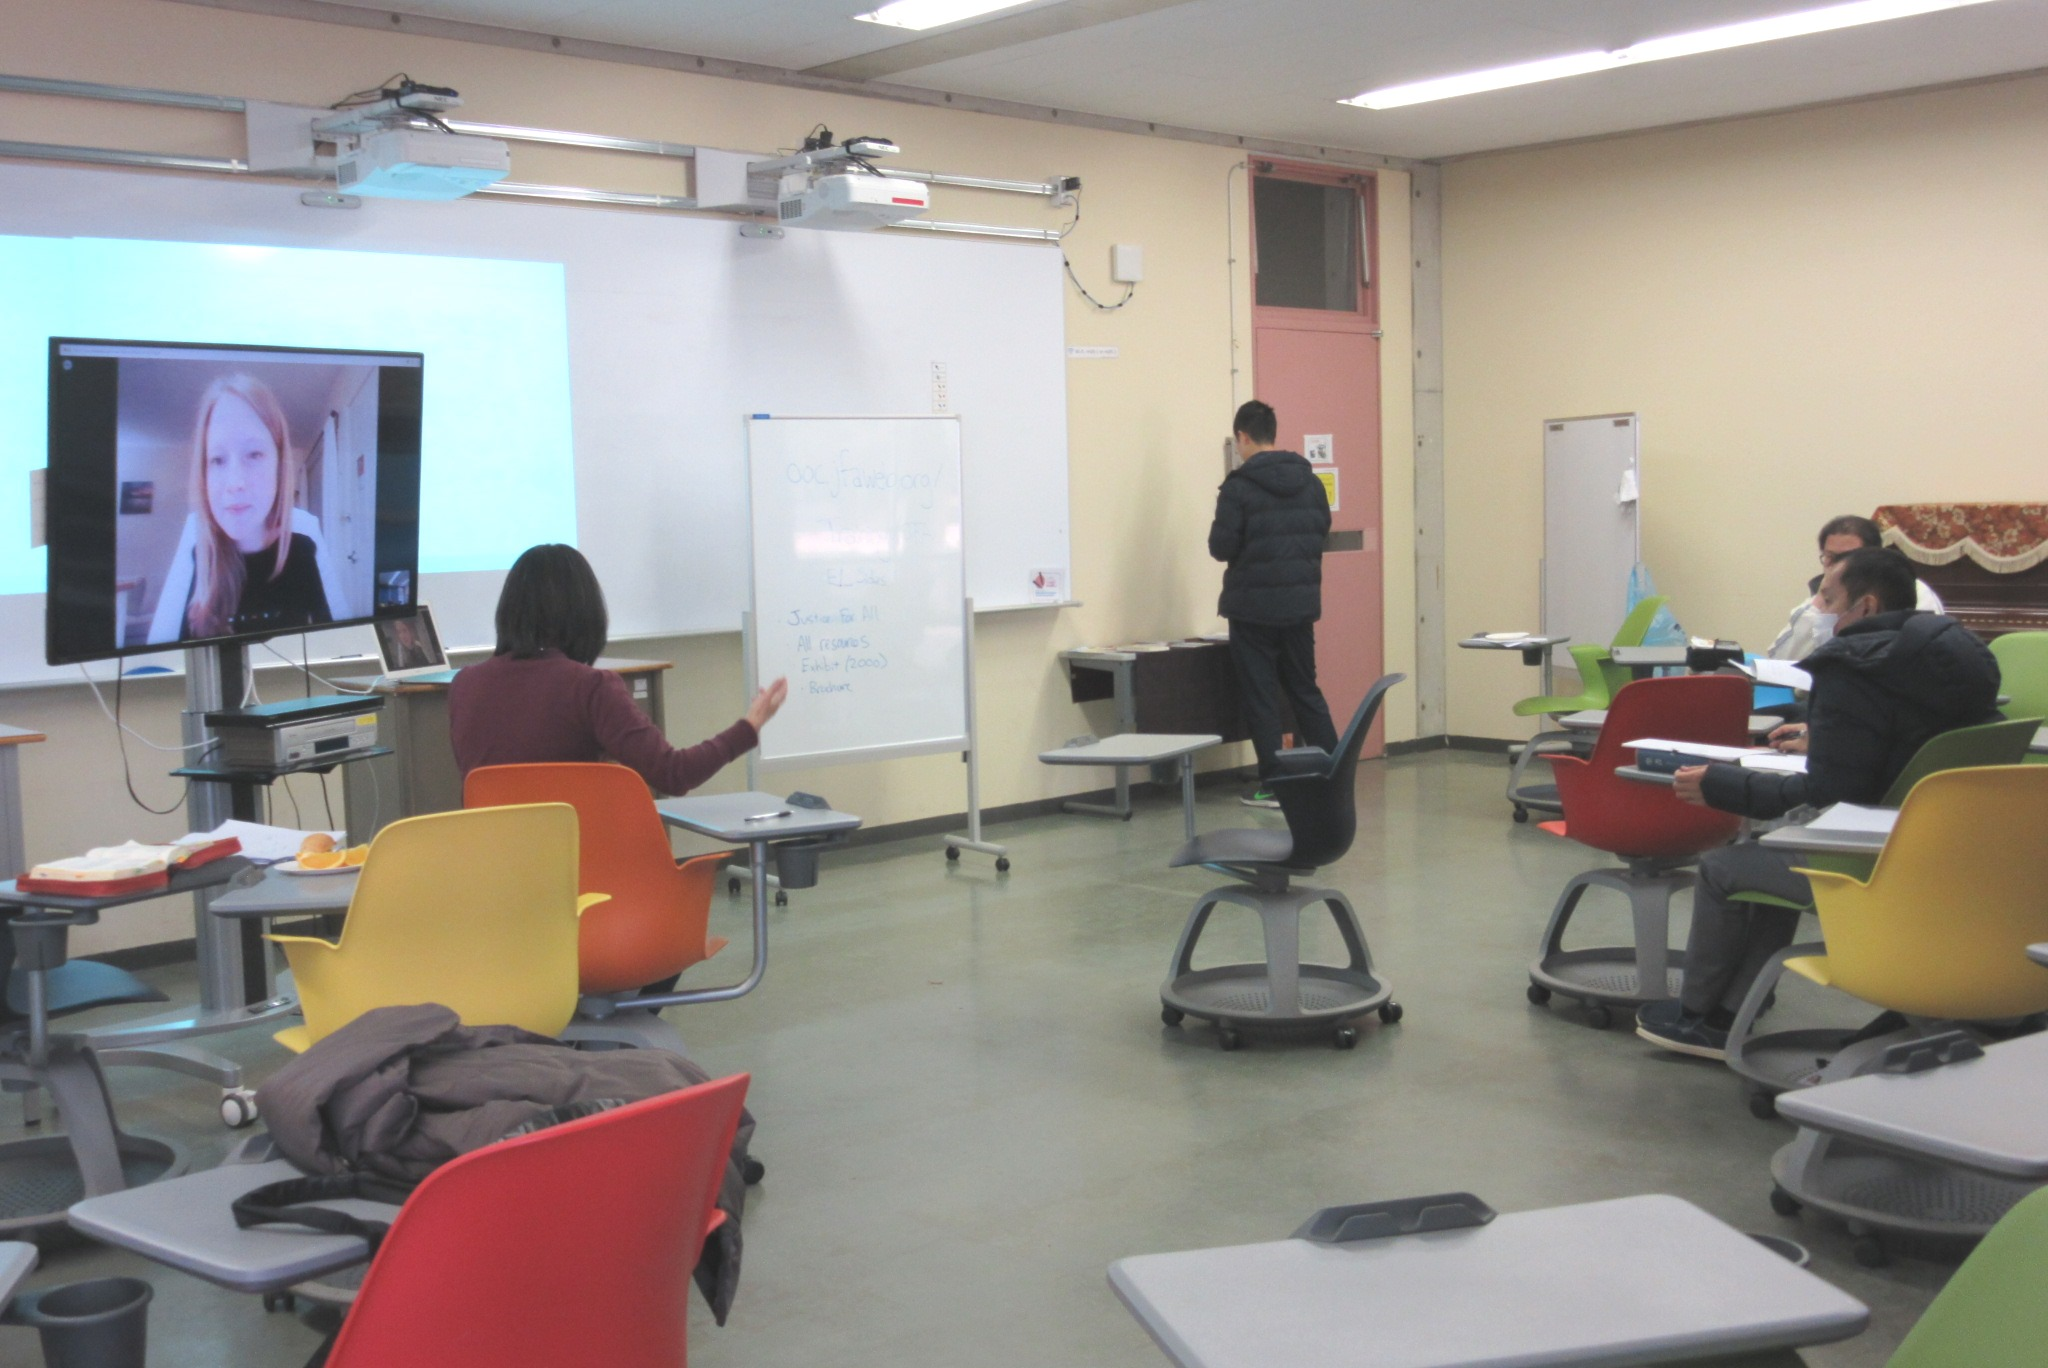 JFA trainer Joanna Bai (left, on screen) led the JFA workshop at Tokyo Christian University for 19 participants (not all in view).